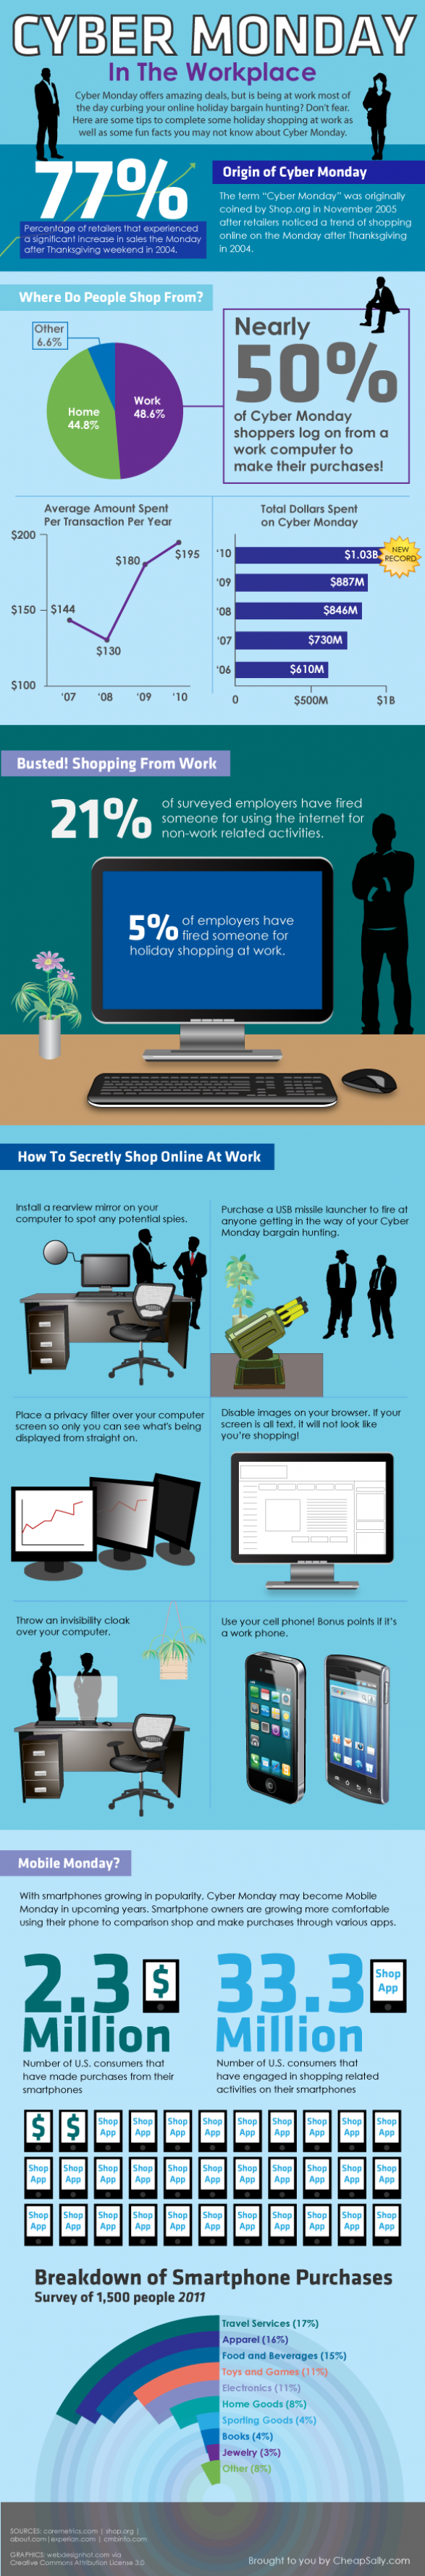 Cyber Monday In The Workplace